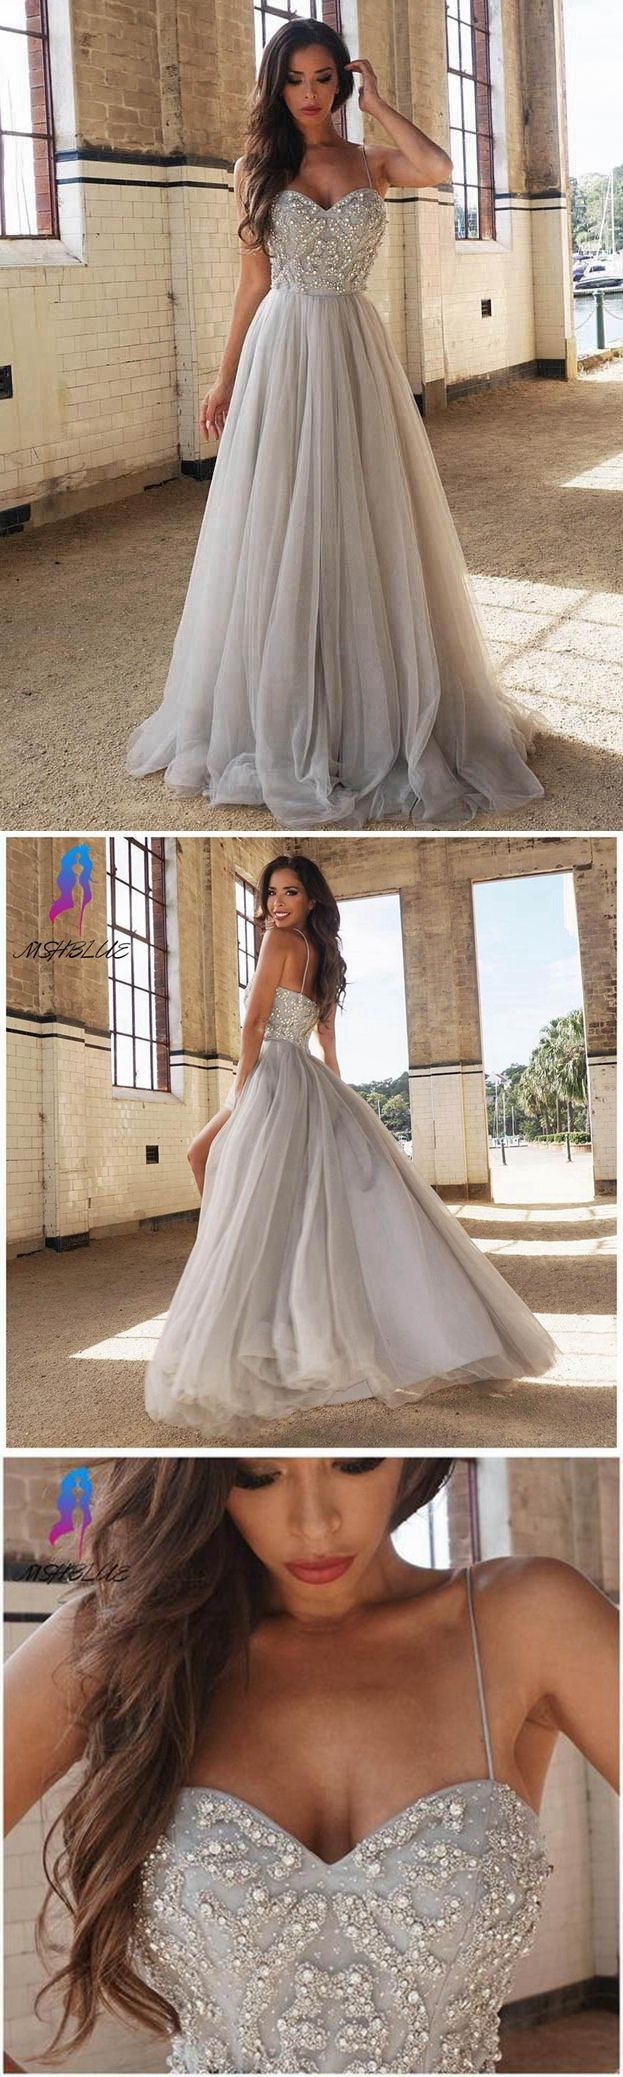 Silver Prom Dress, Prom Dresses,Graduation Party Dresses, Prom Dresses For Teens · BBTrending · Online Store Powered by Storenvy